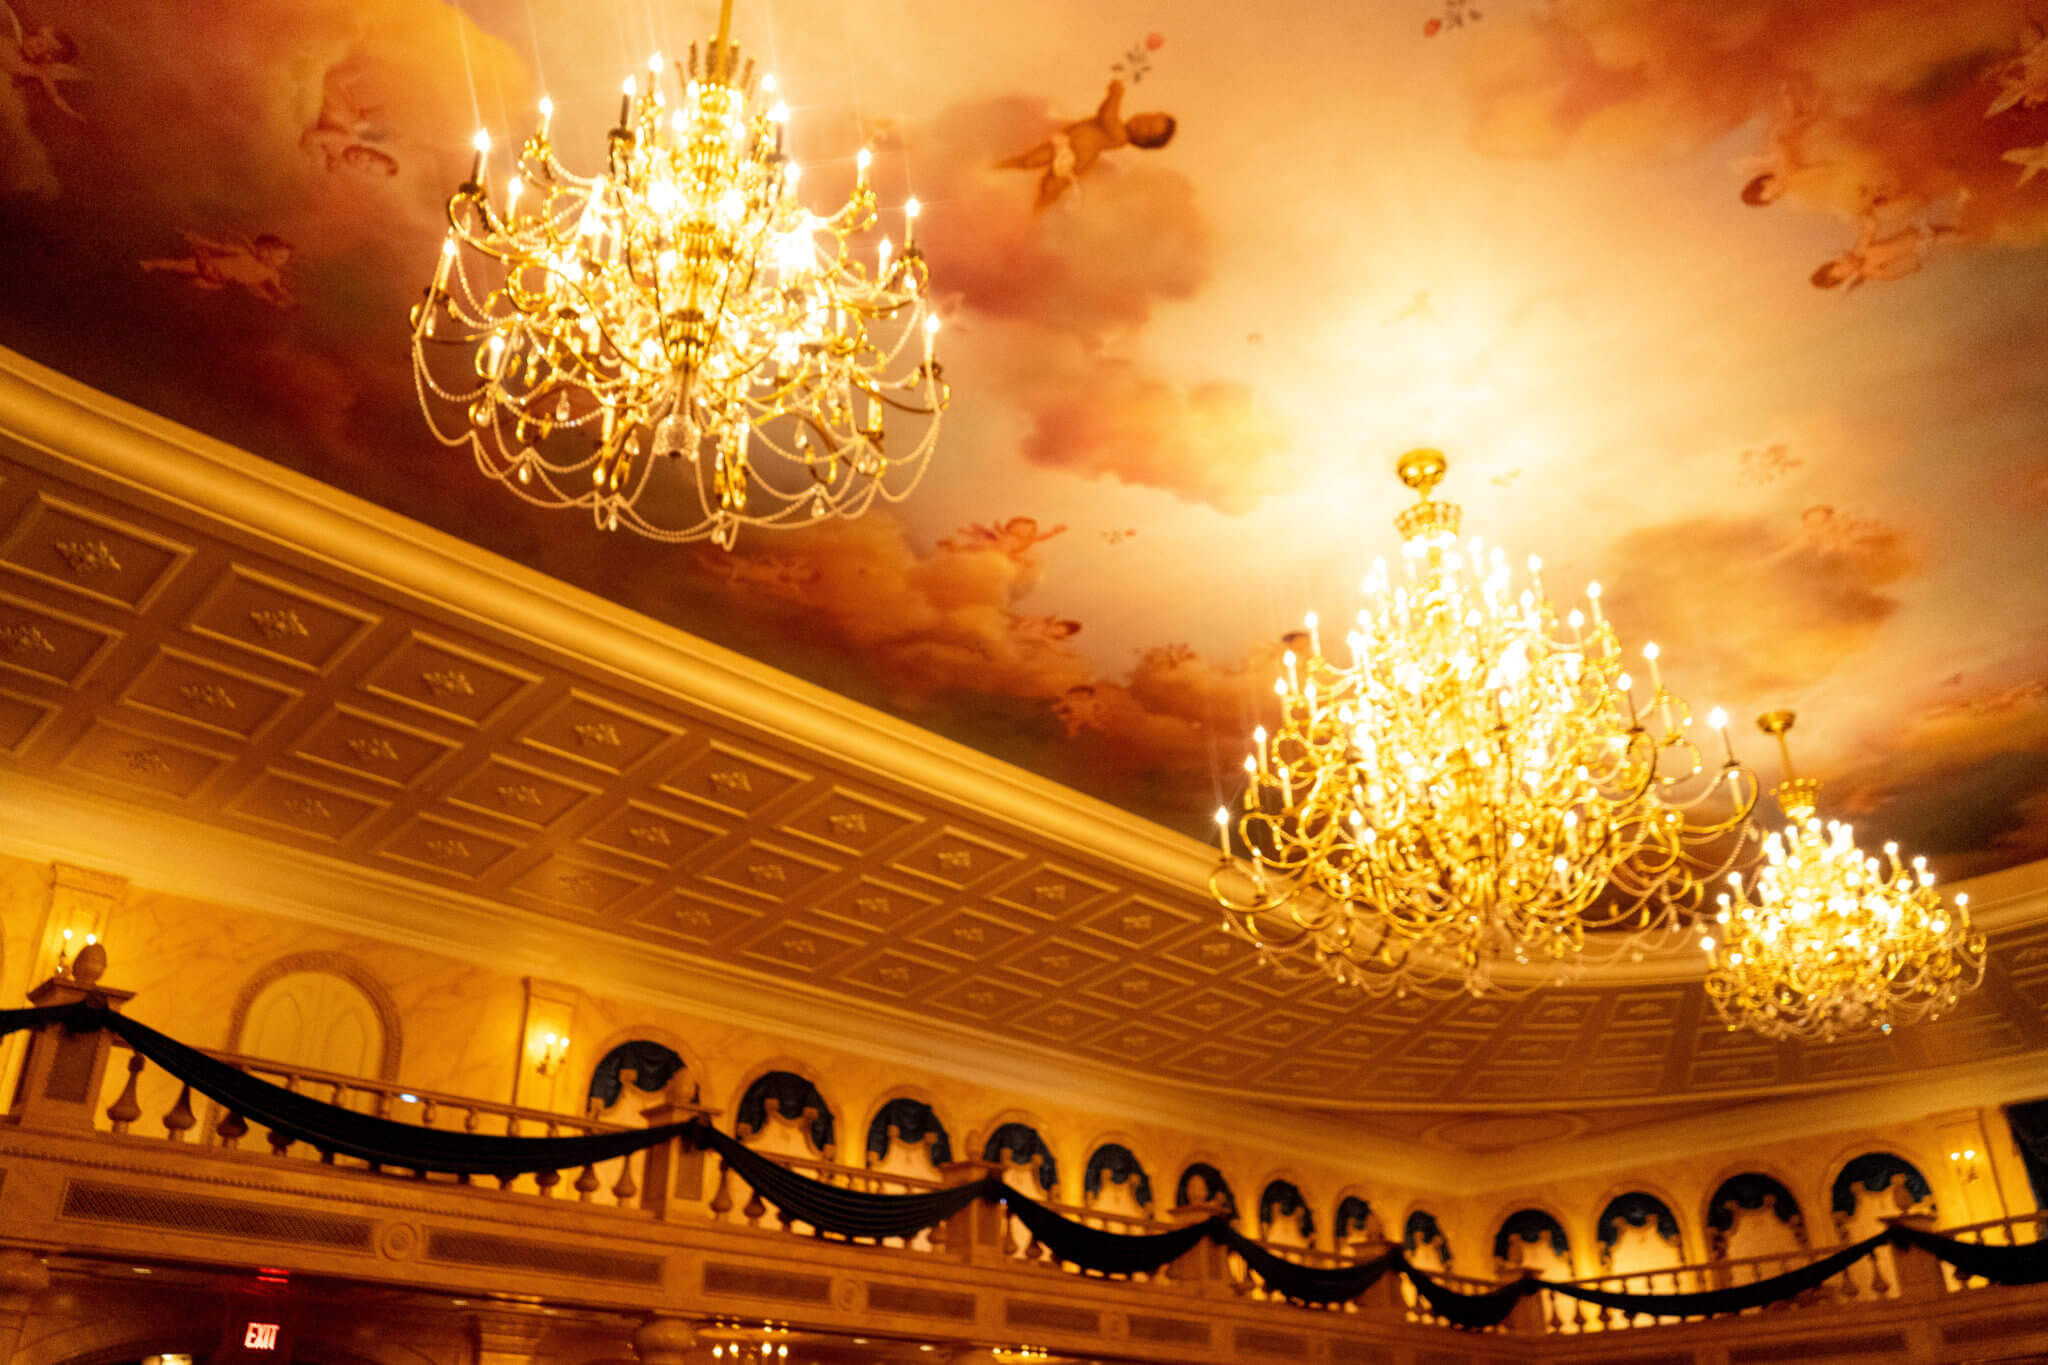 Be Our Guest Ceiling Chandeliers in Magic Kingdom - Disney World